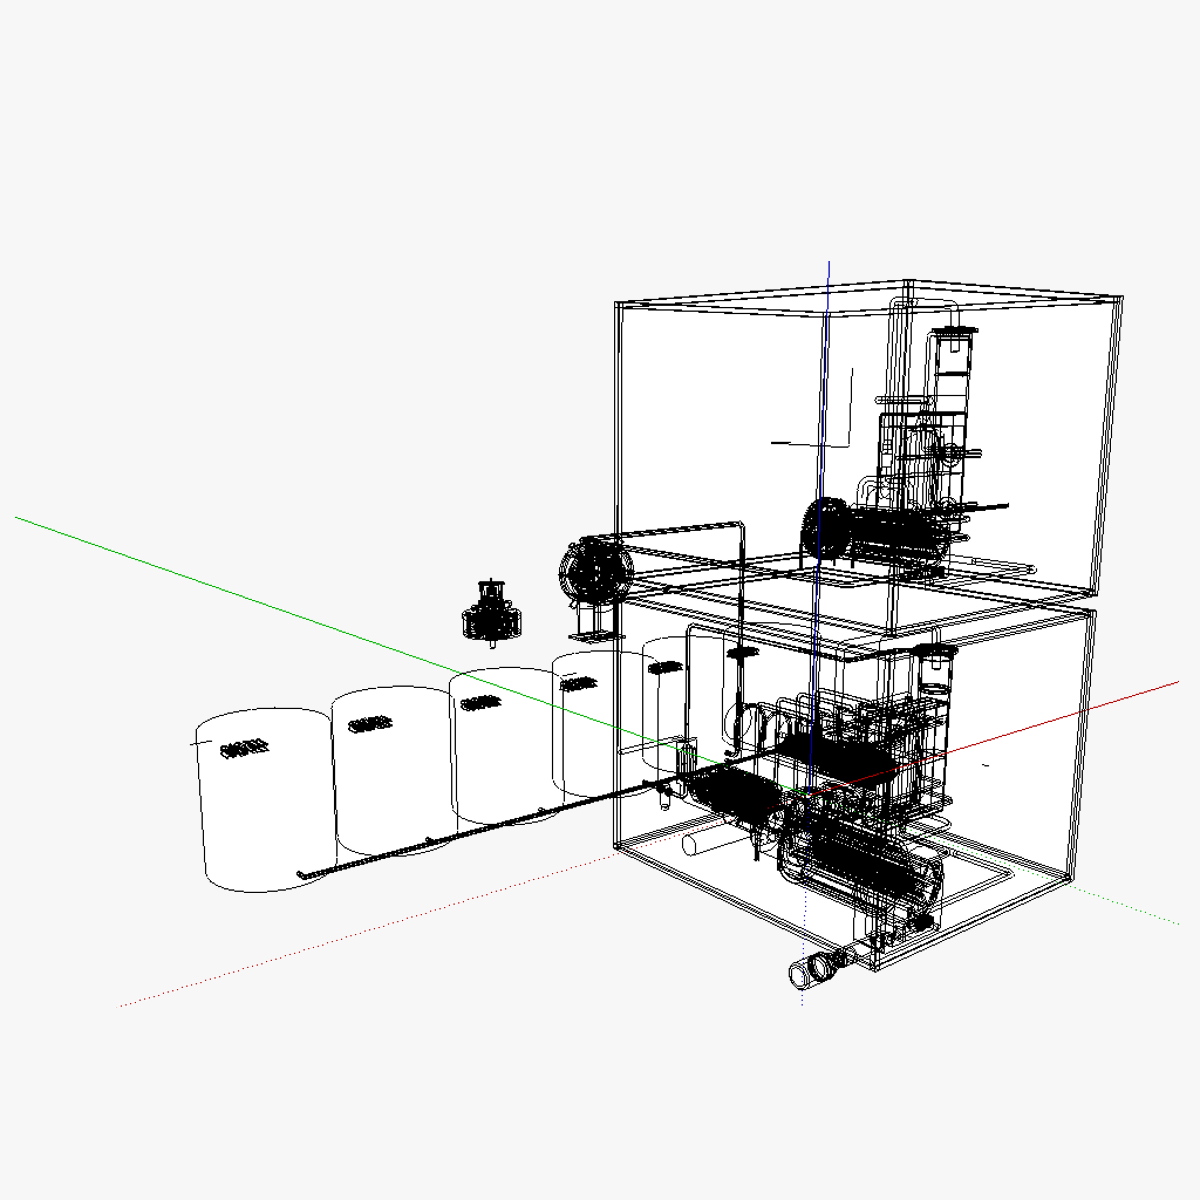 Compressed air energy and use system (CAES 3D Model .skp  CGTrader  #468546